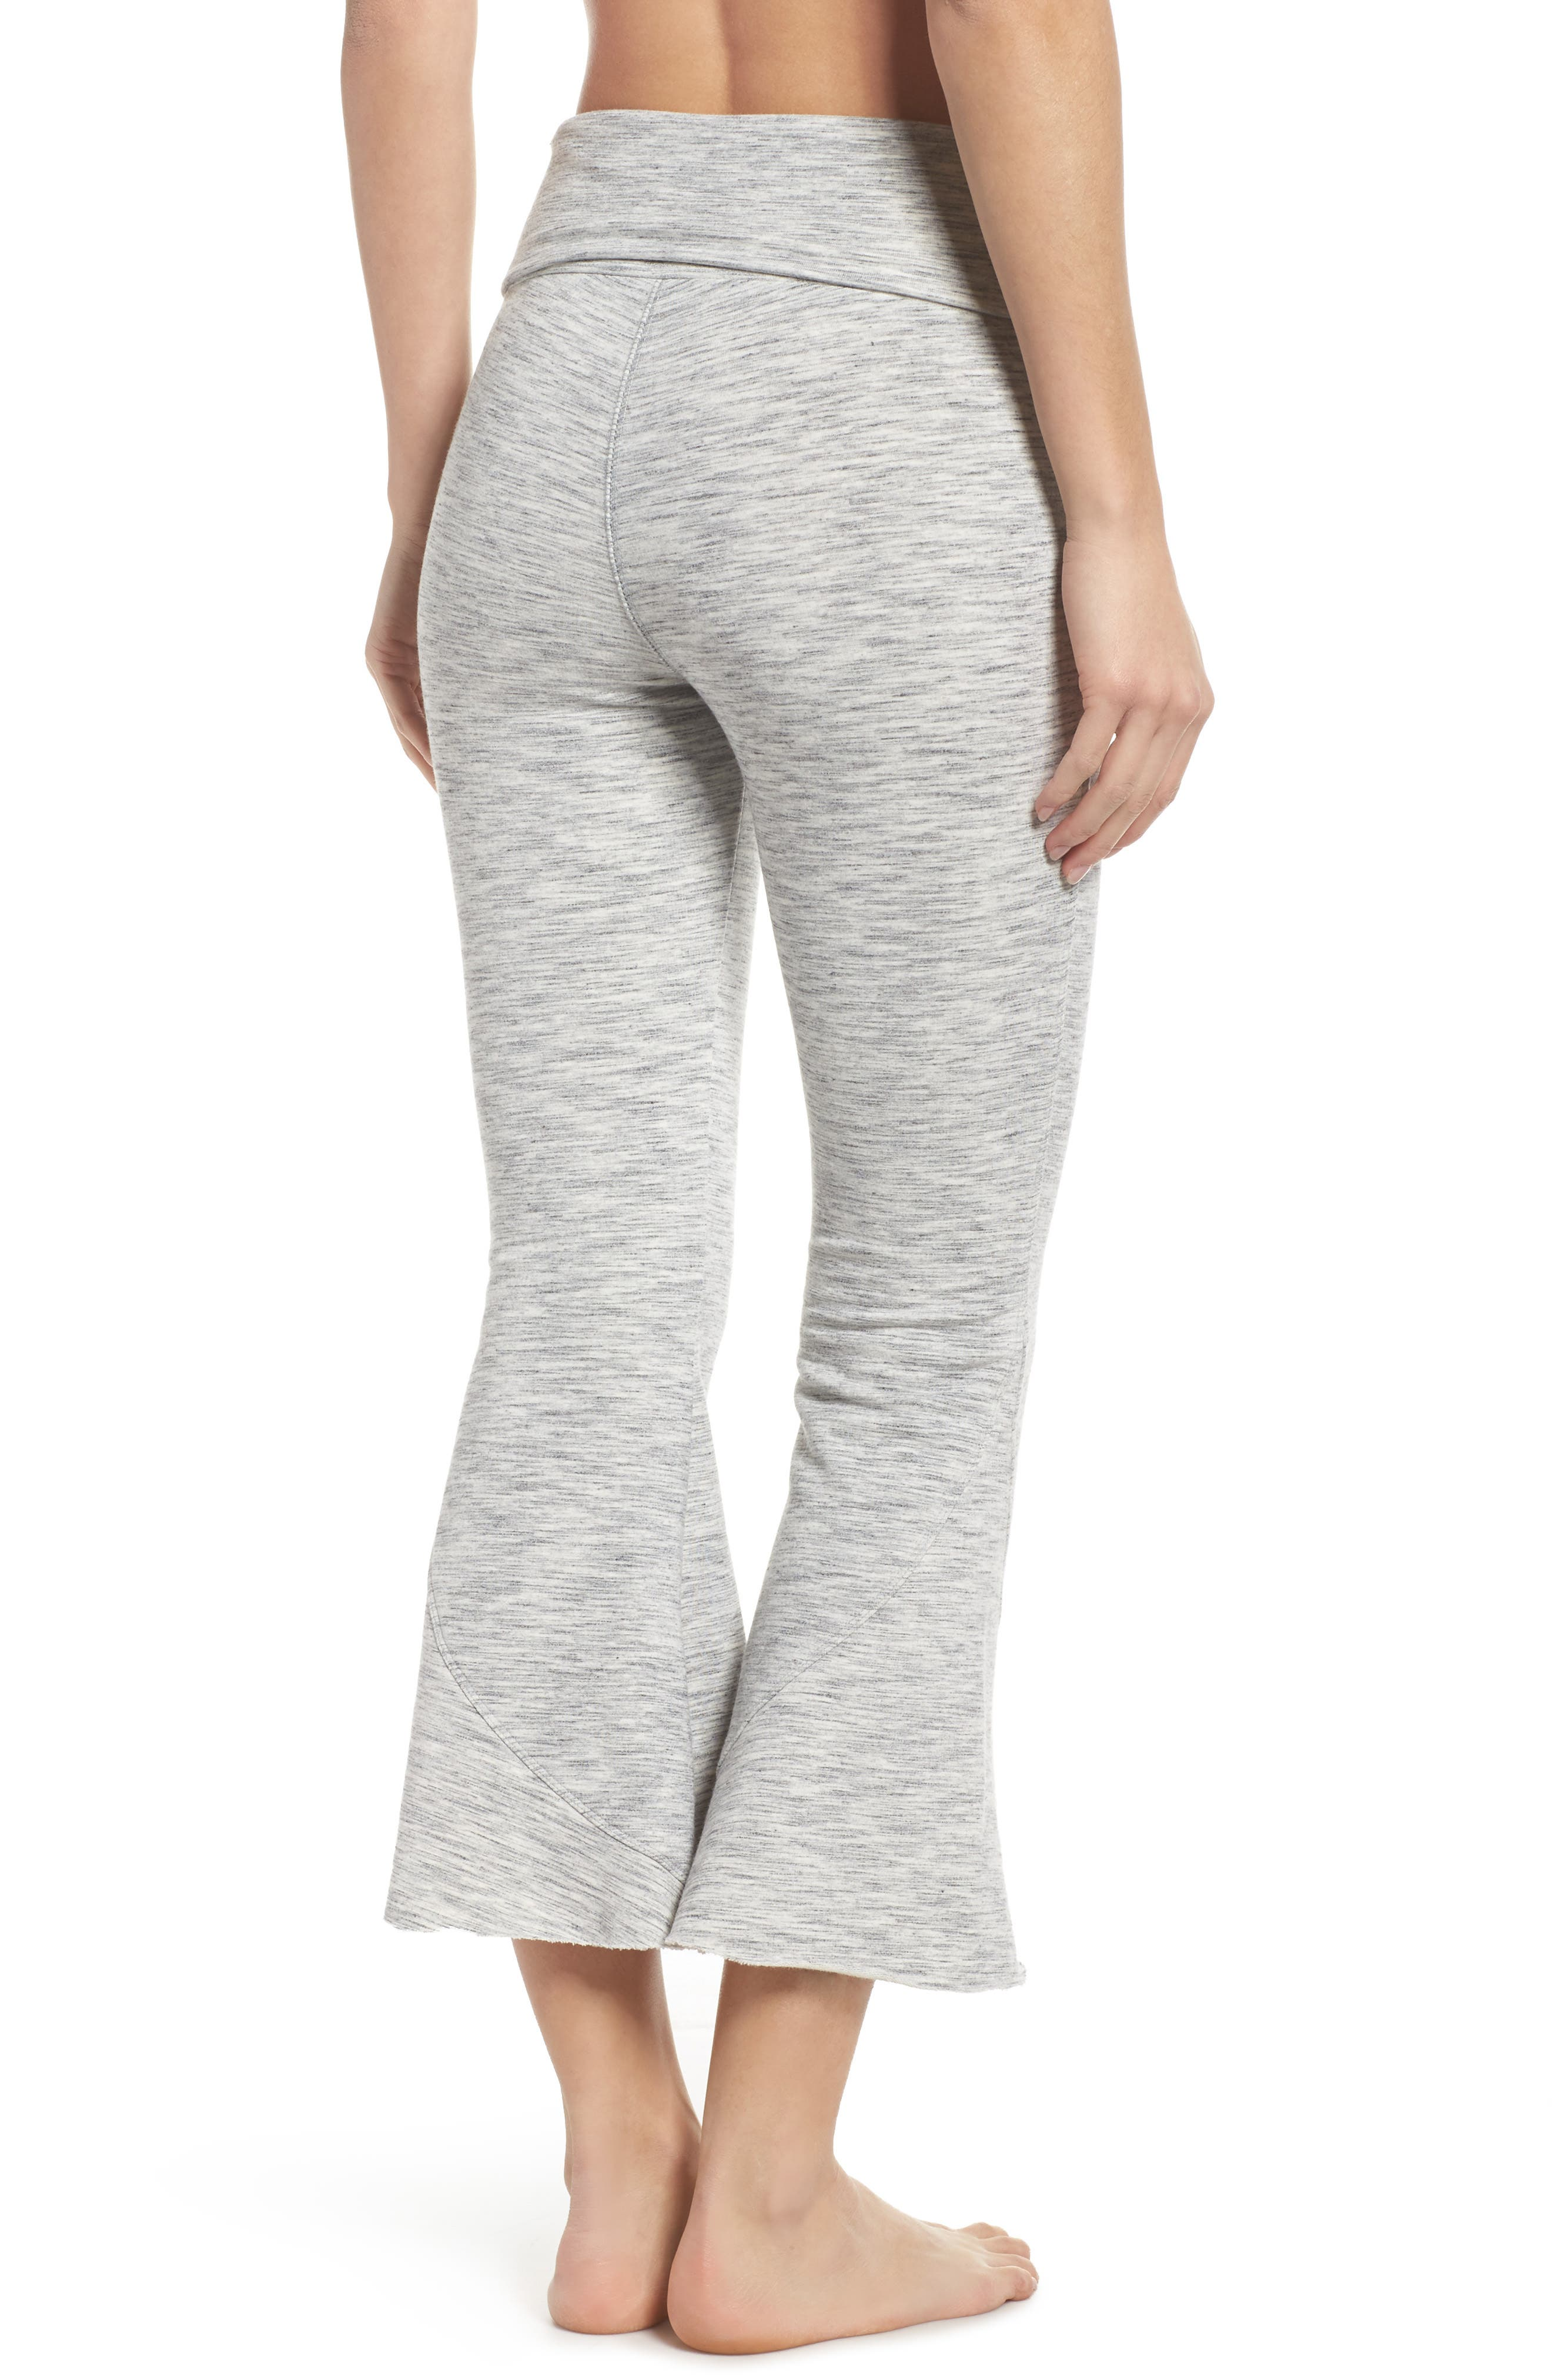 FP Movement Nico Crop Flare Sweatpants,                             Alternate thumbnail 2, color,                             025